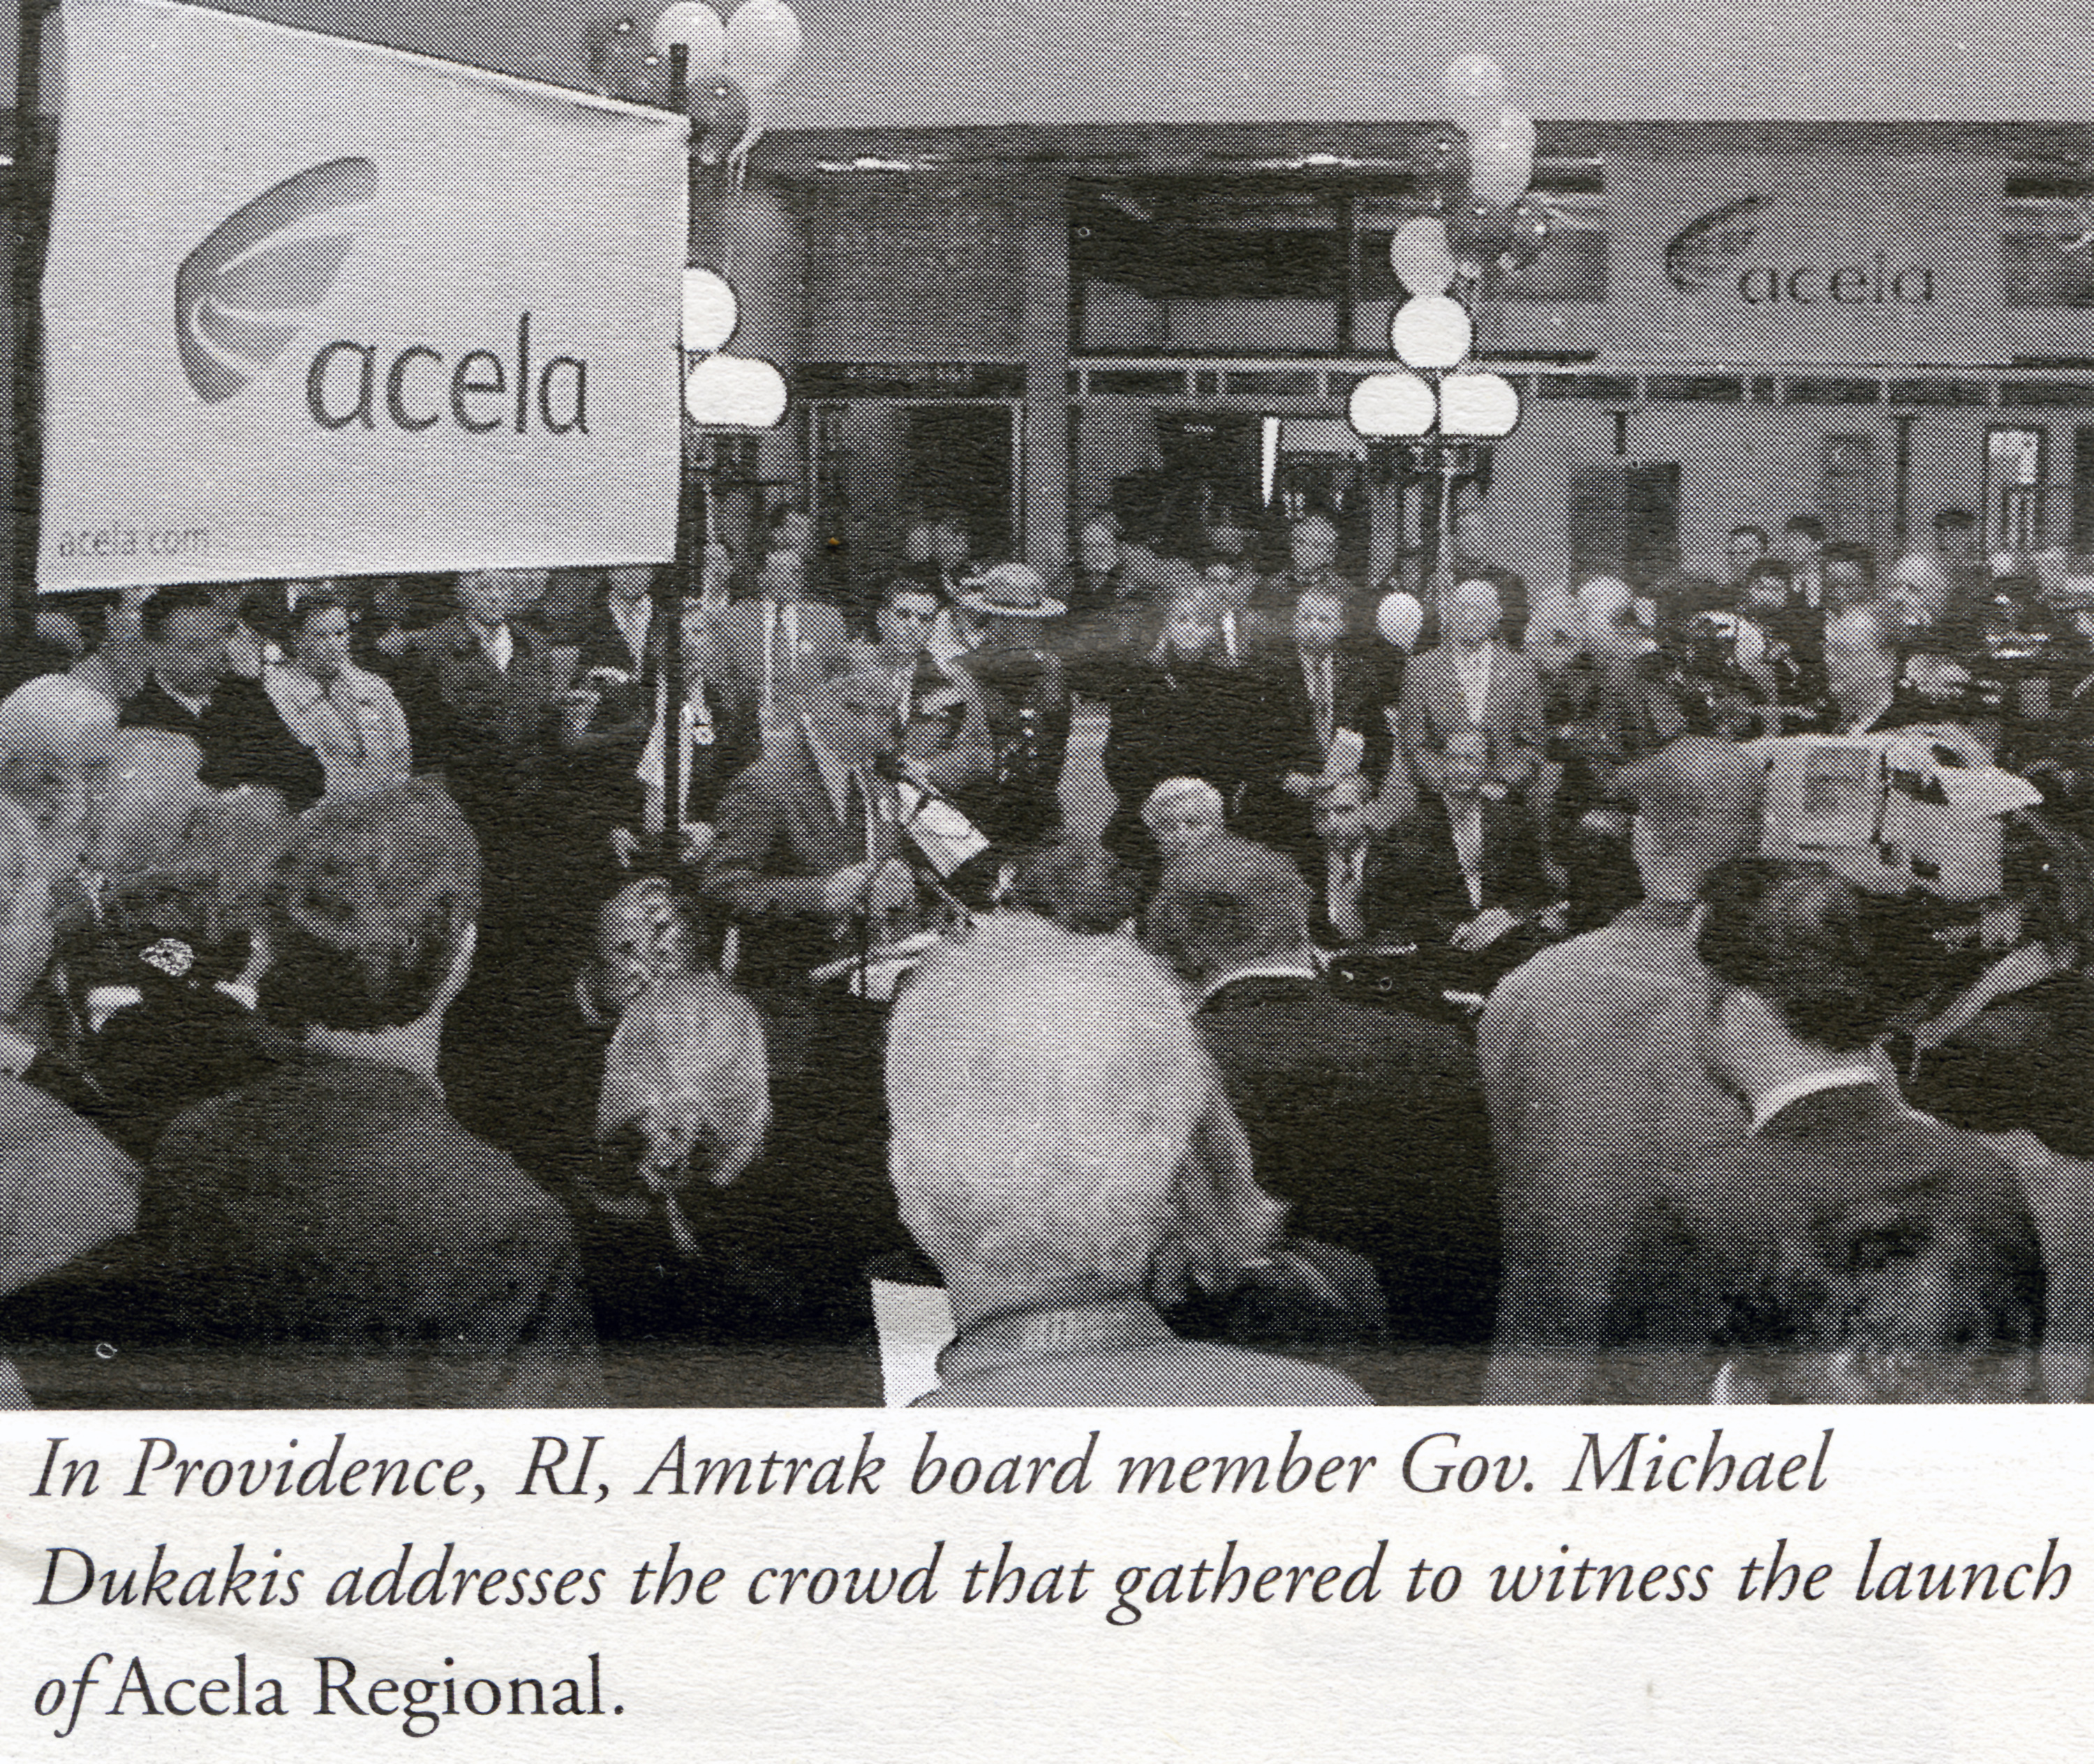 Ceremony to celebrate the start of Acela Regional service - Jan 31, 2000